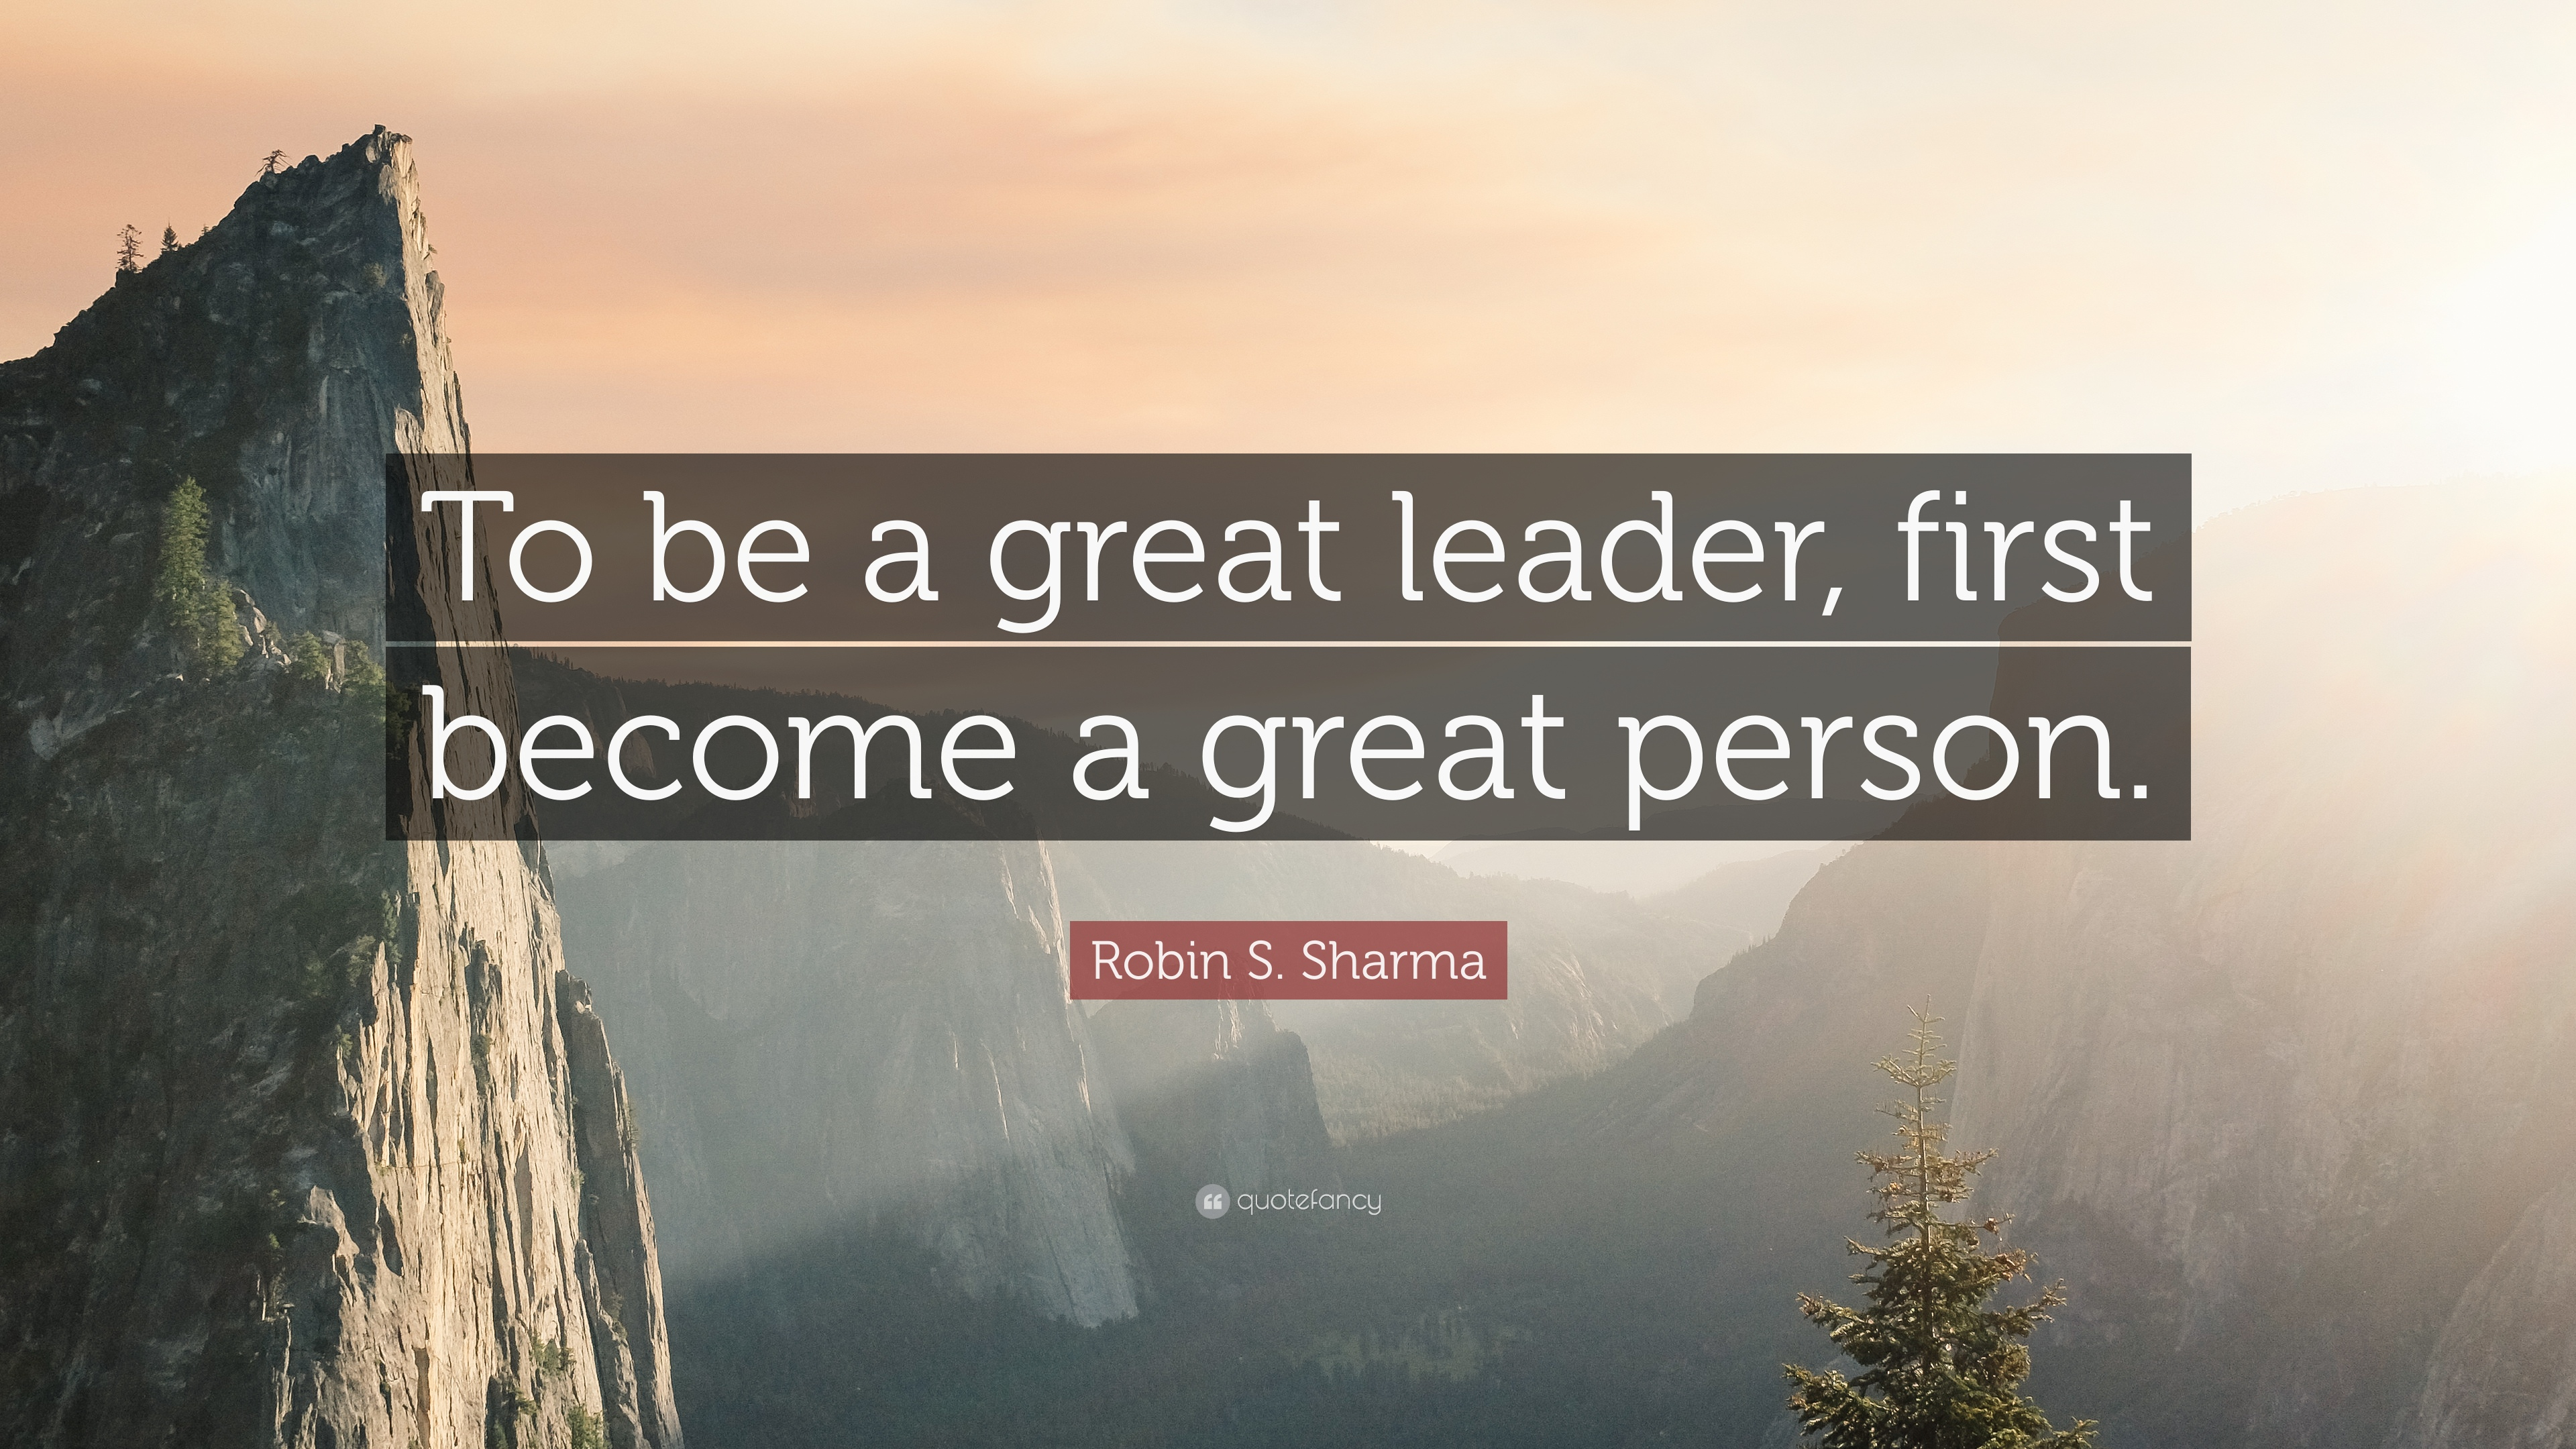 how to become great person